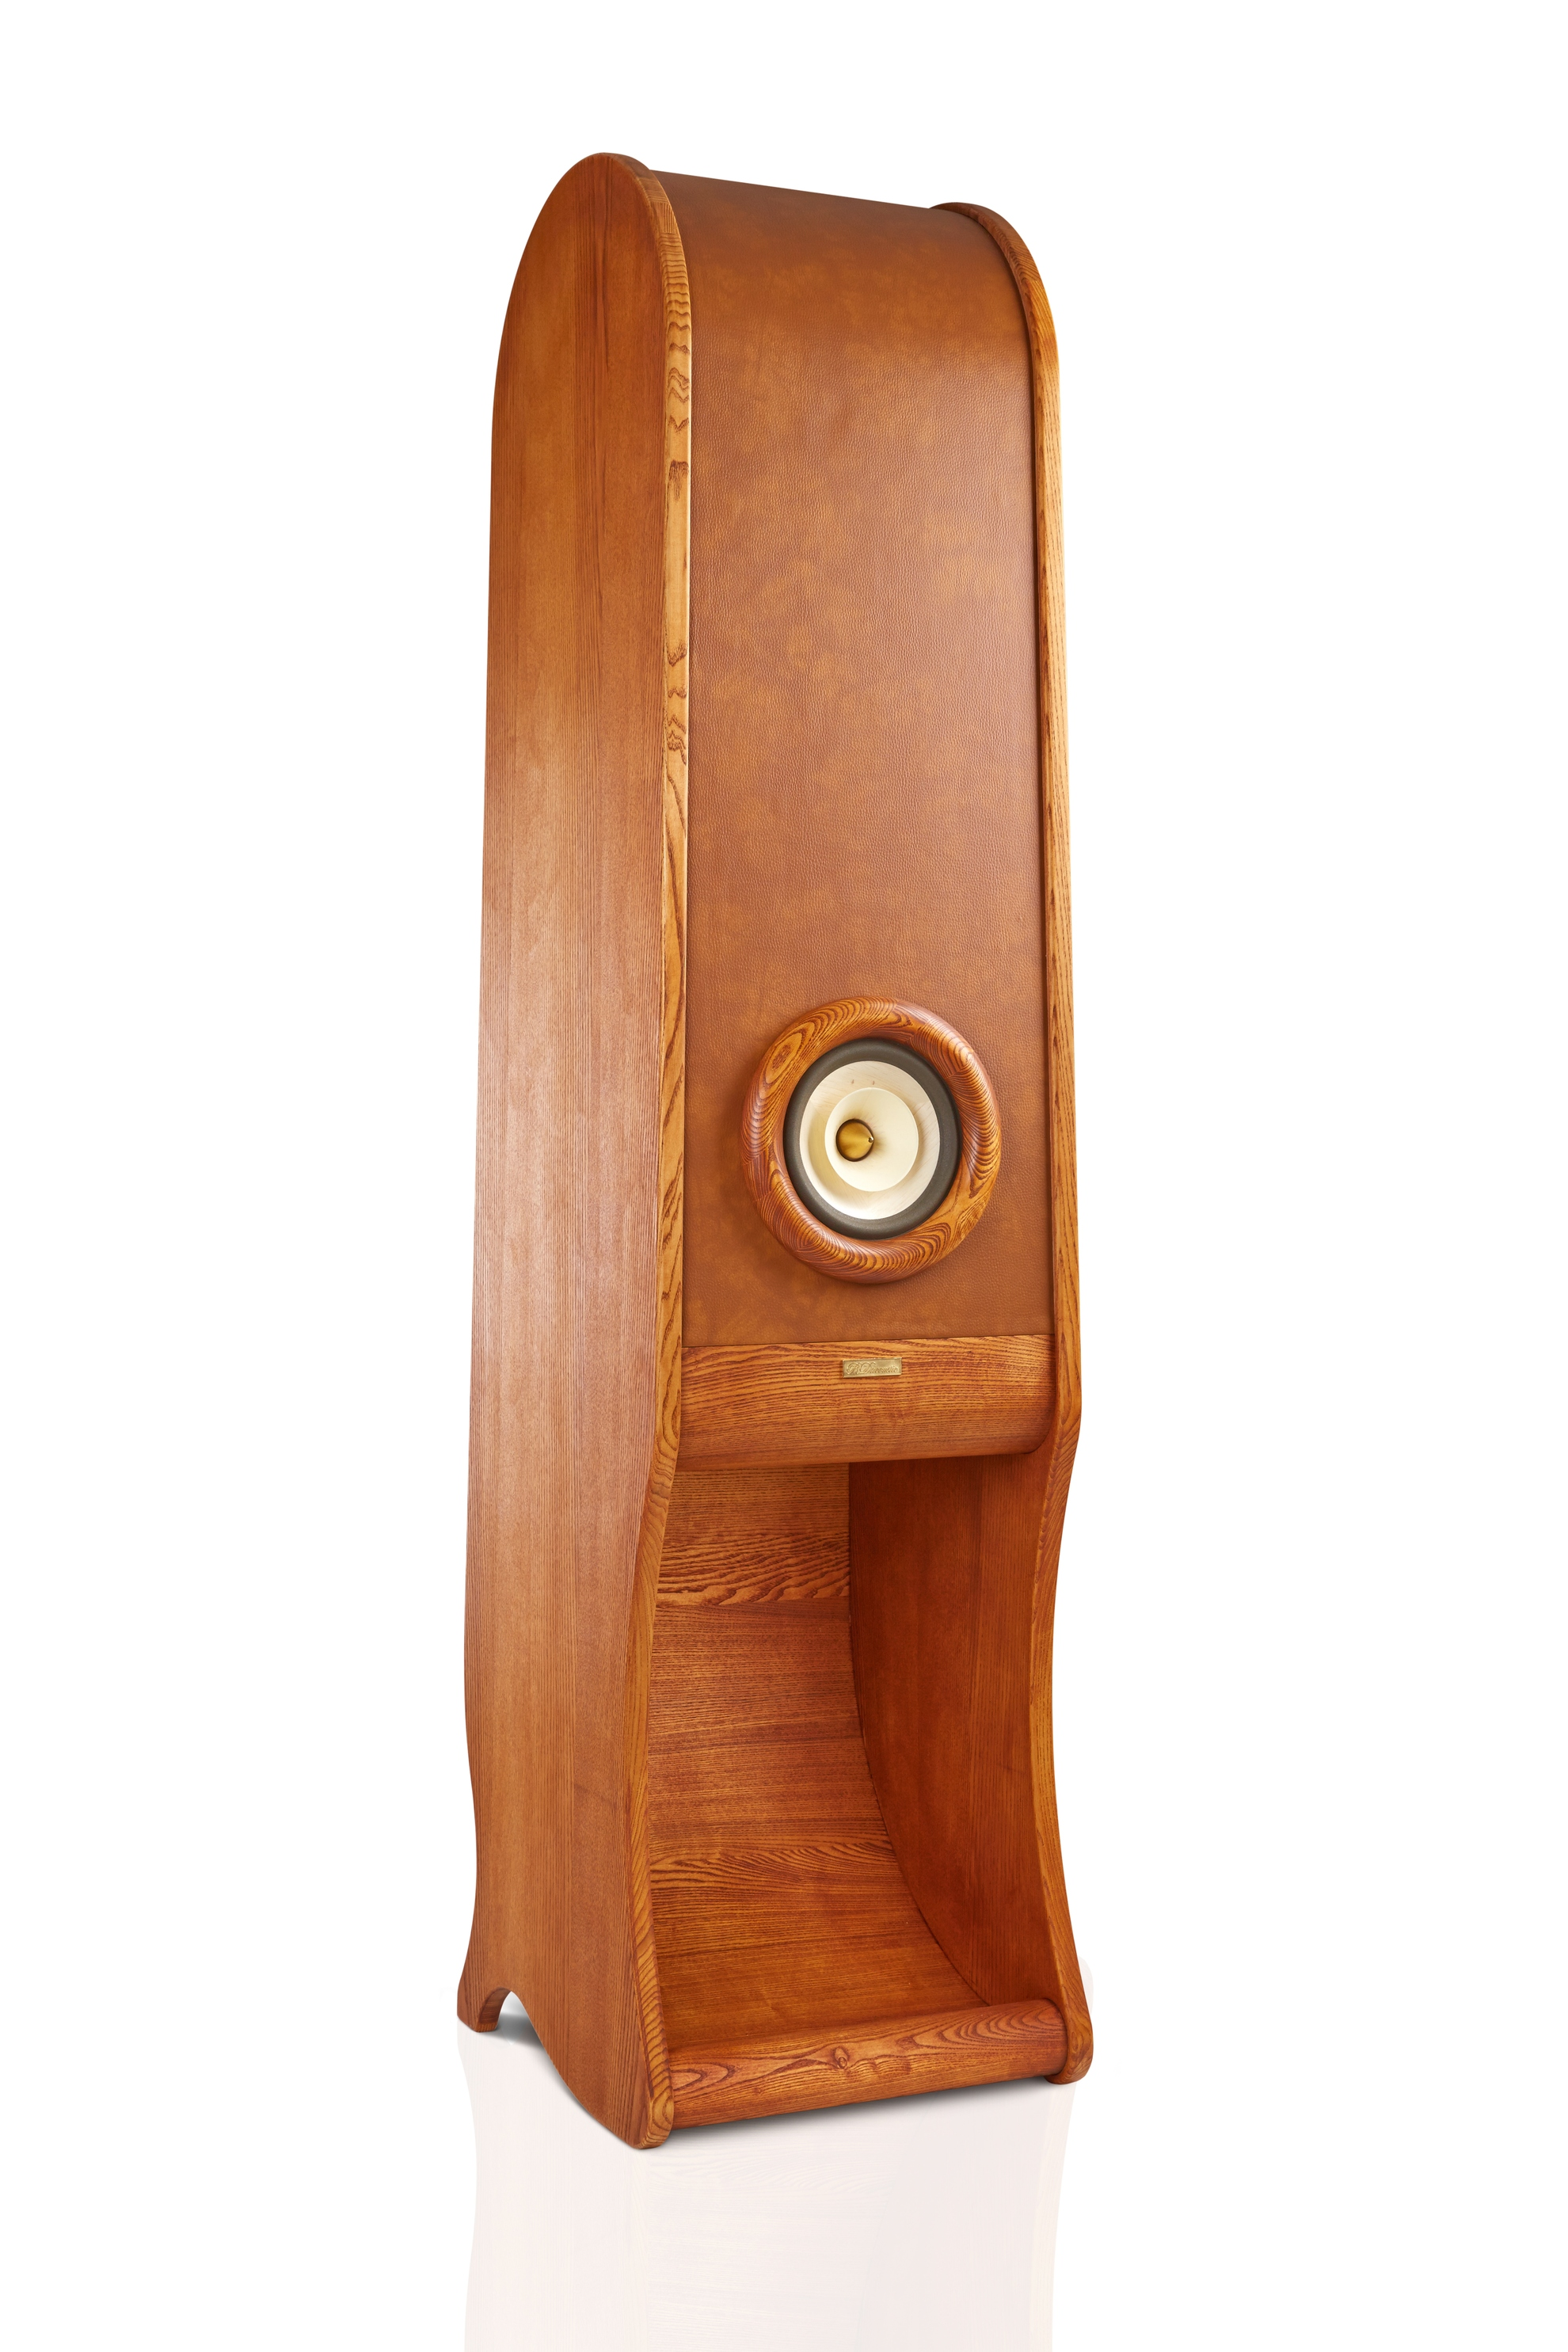 High End speakers Evolution RDacoustic wood variant - sigle